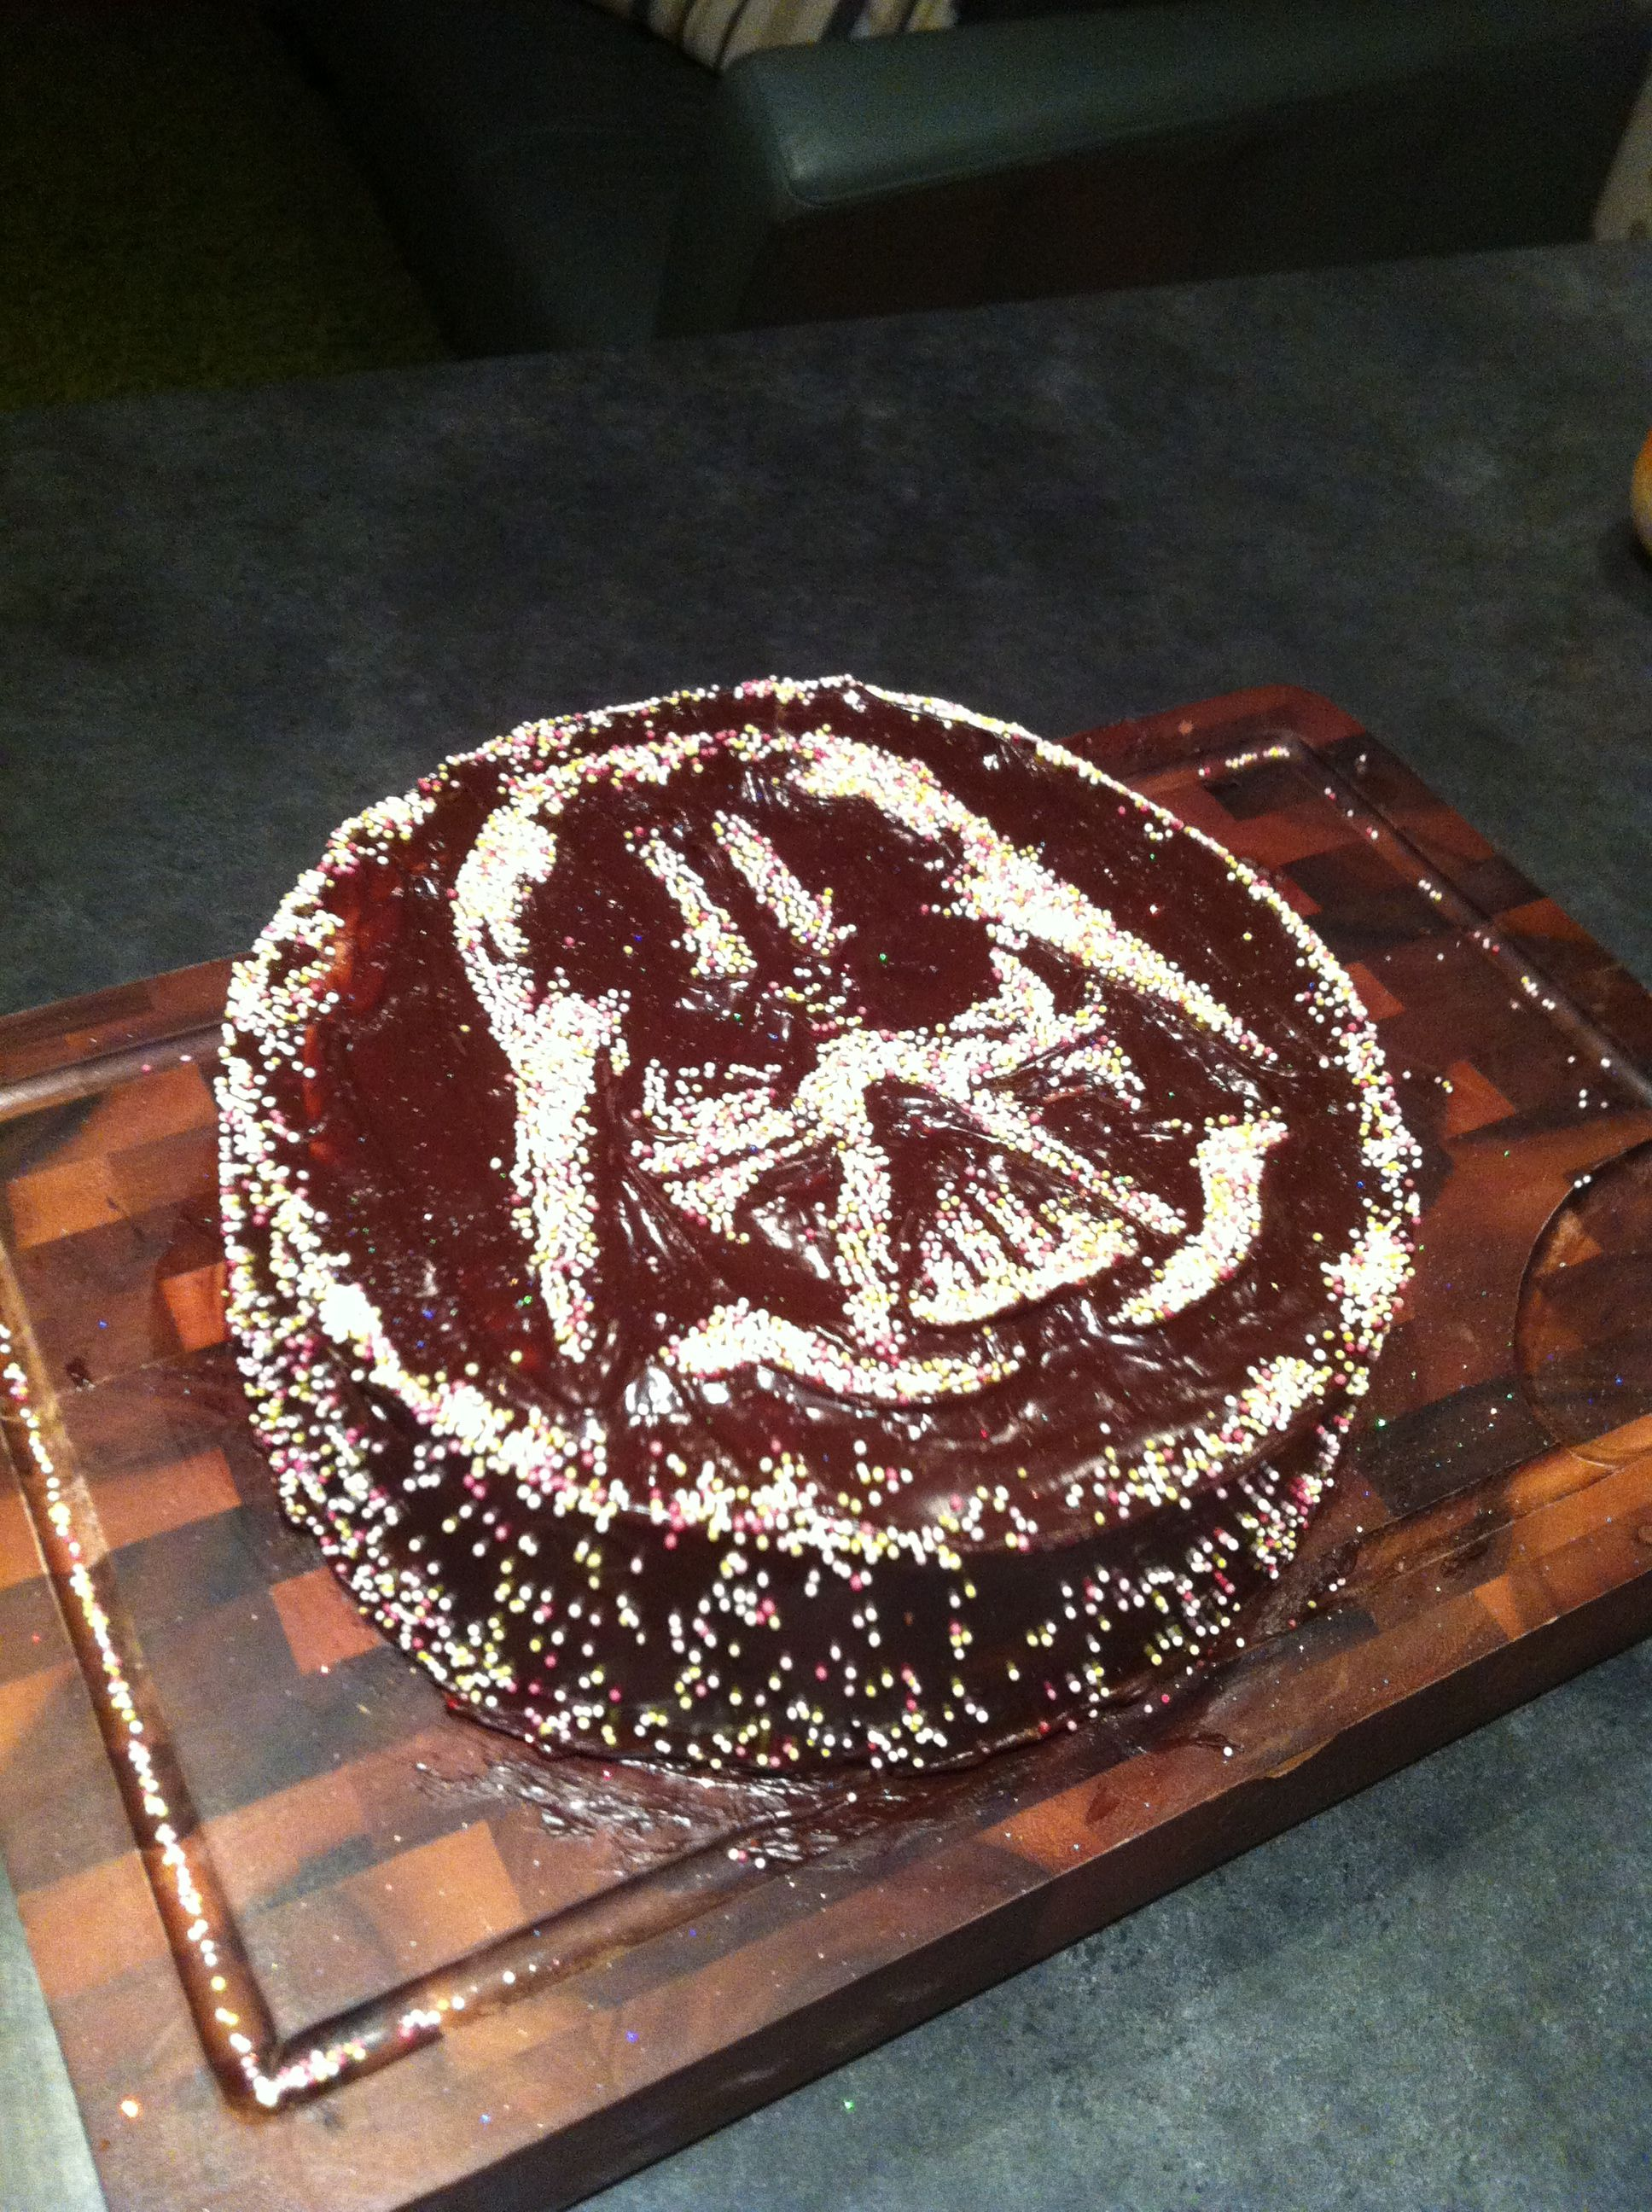 Darth Vader Chocolate Cake. Rich chocolate cake with a chocolate buttercream filling, covered in dark chocolate ganache, then sprinkled through a stencil I made! Easy (ish) to do and looked great for a Star Wars fan's birthday